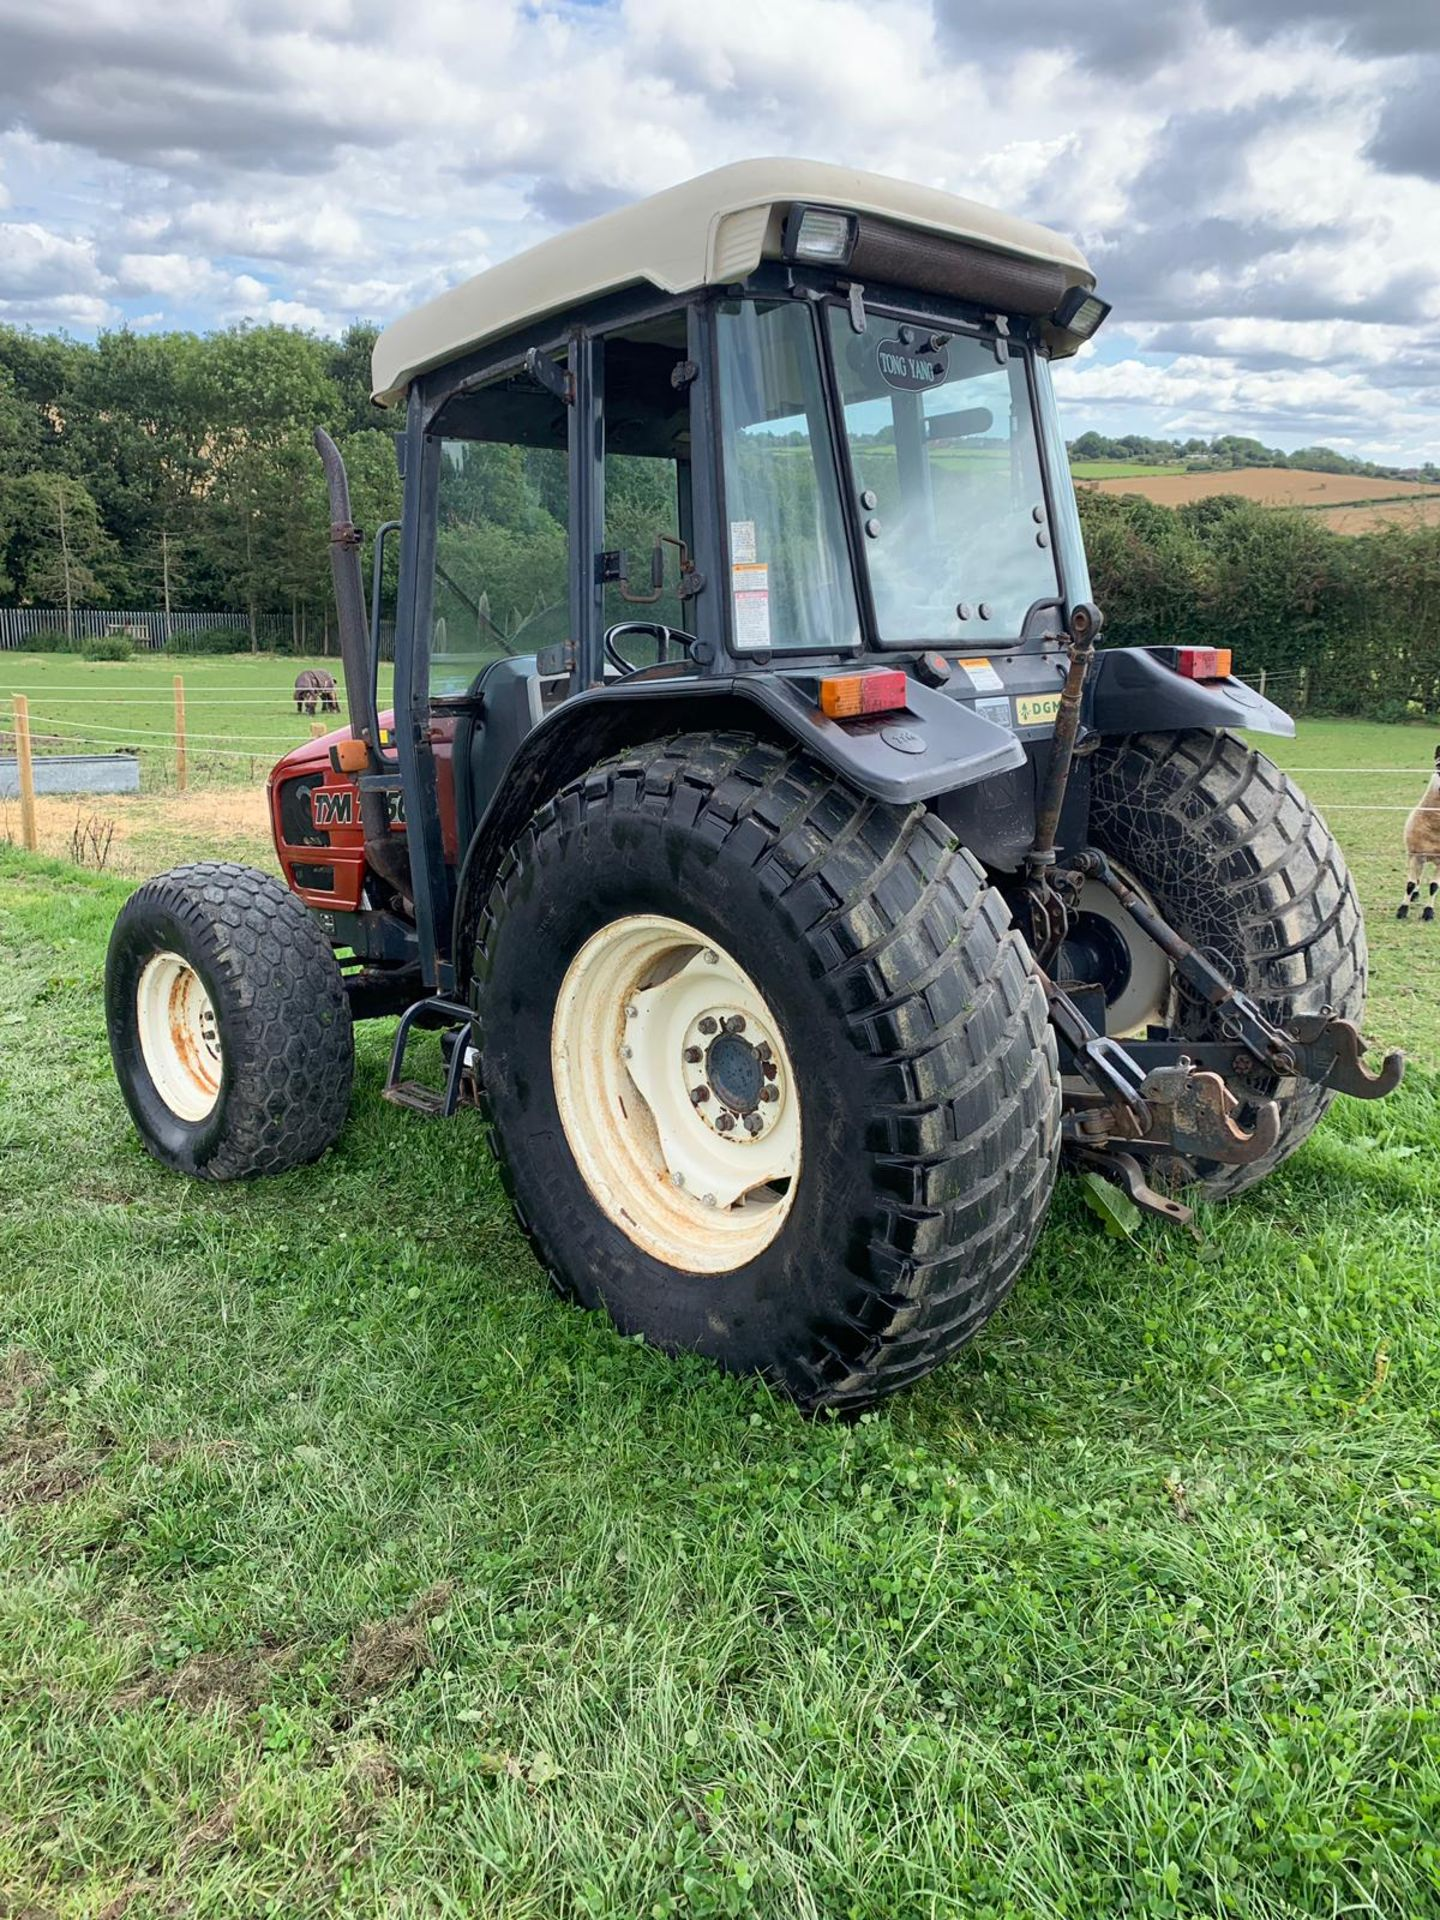 Lot 35 - TYM T550 COMPACT TRACTOR WITH CAB, RUNS AND WORKS, SHOWING 2219 HOURS (UNVERIFIED) *PLUS VAT*